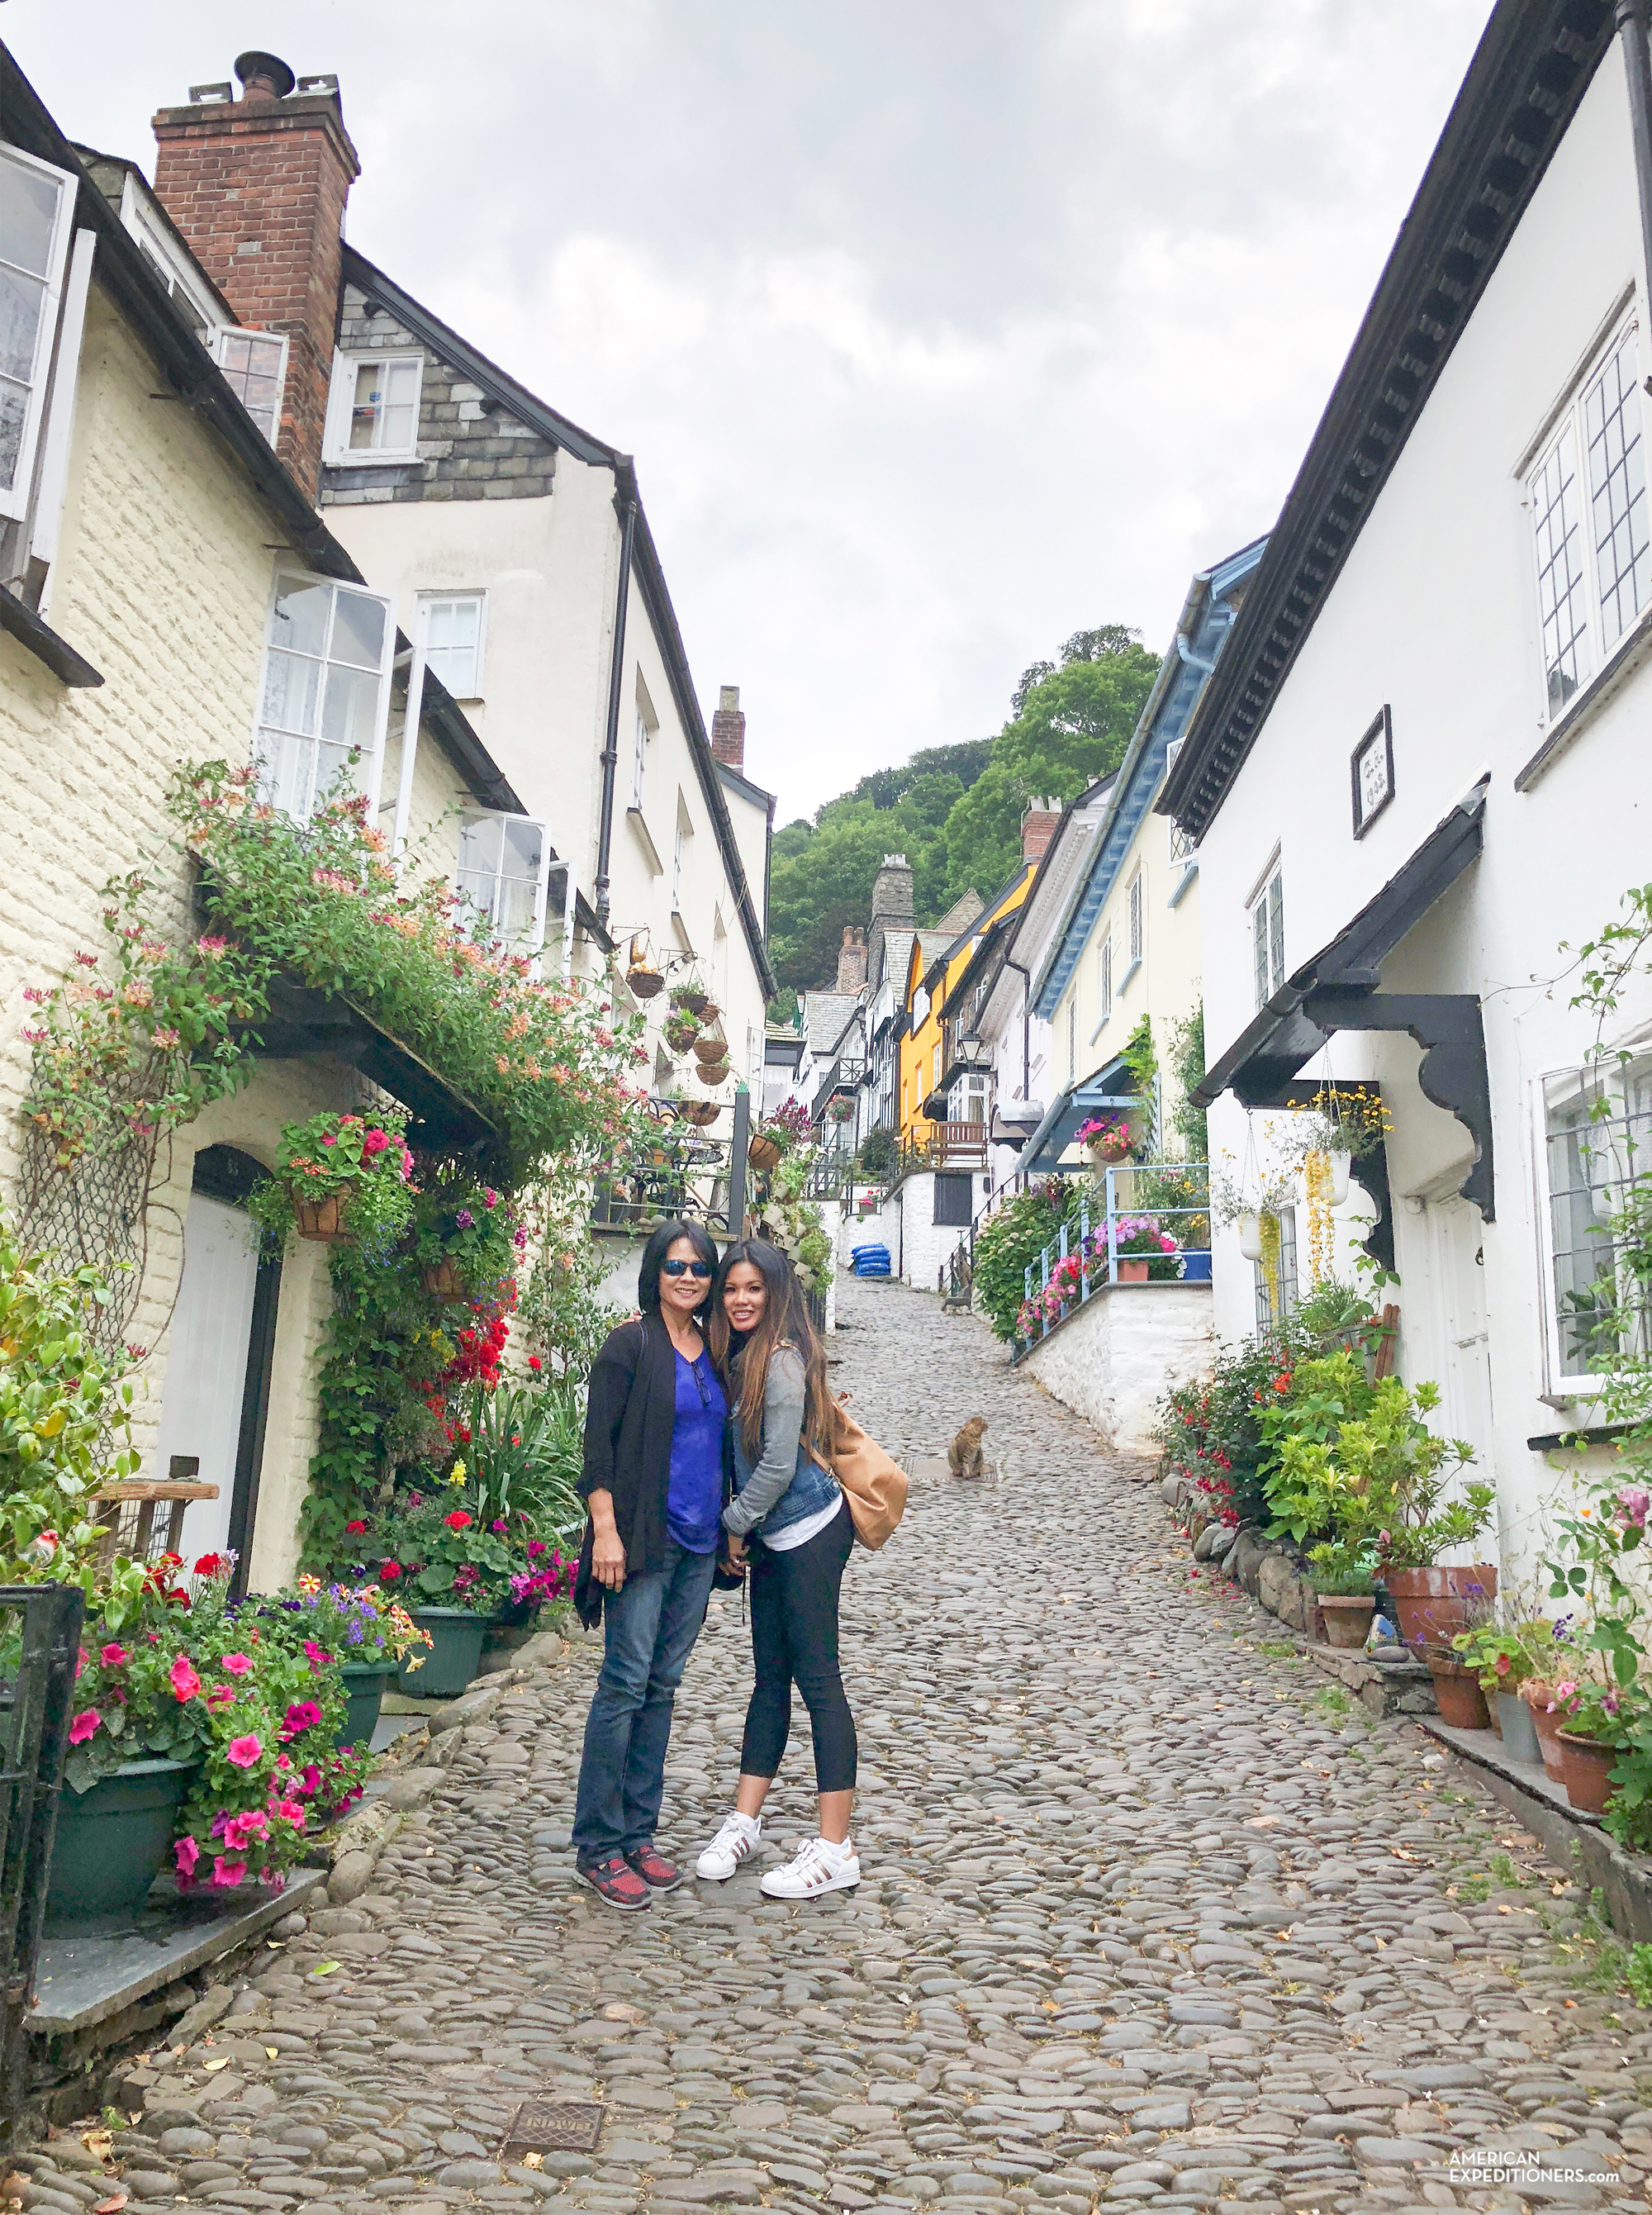 Clovelly, a Not-So-Typical, Quaint English Village ... Quaint English Village